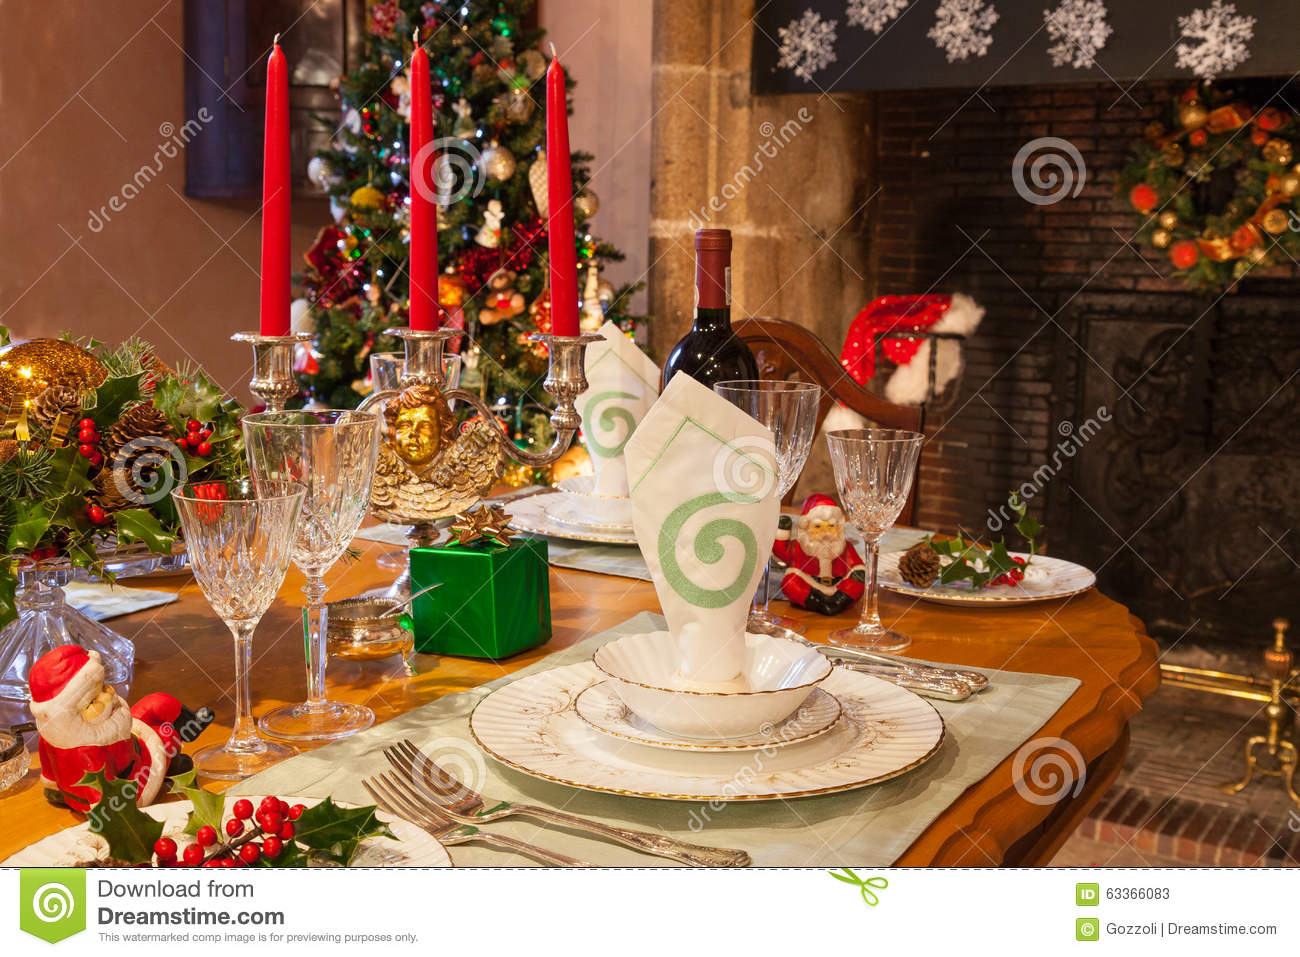 Christmas Dinner Table Setting Warm Ambiance Stock Image